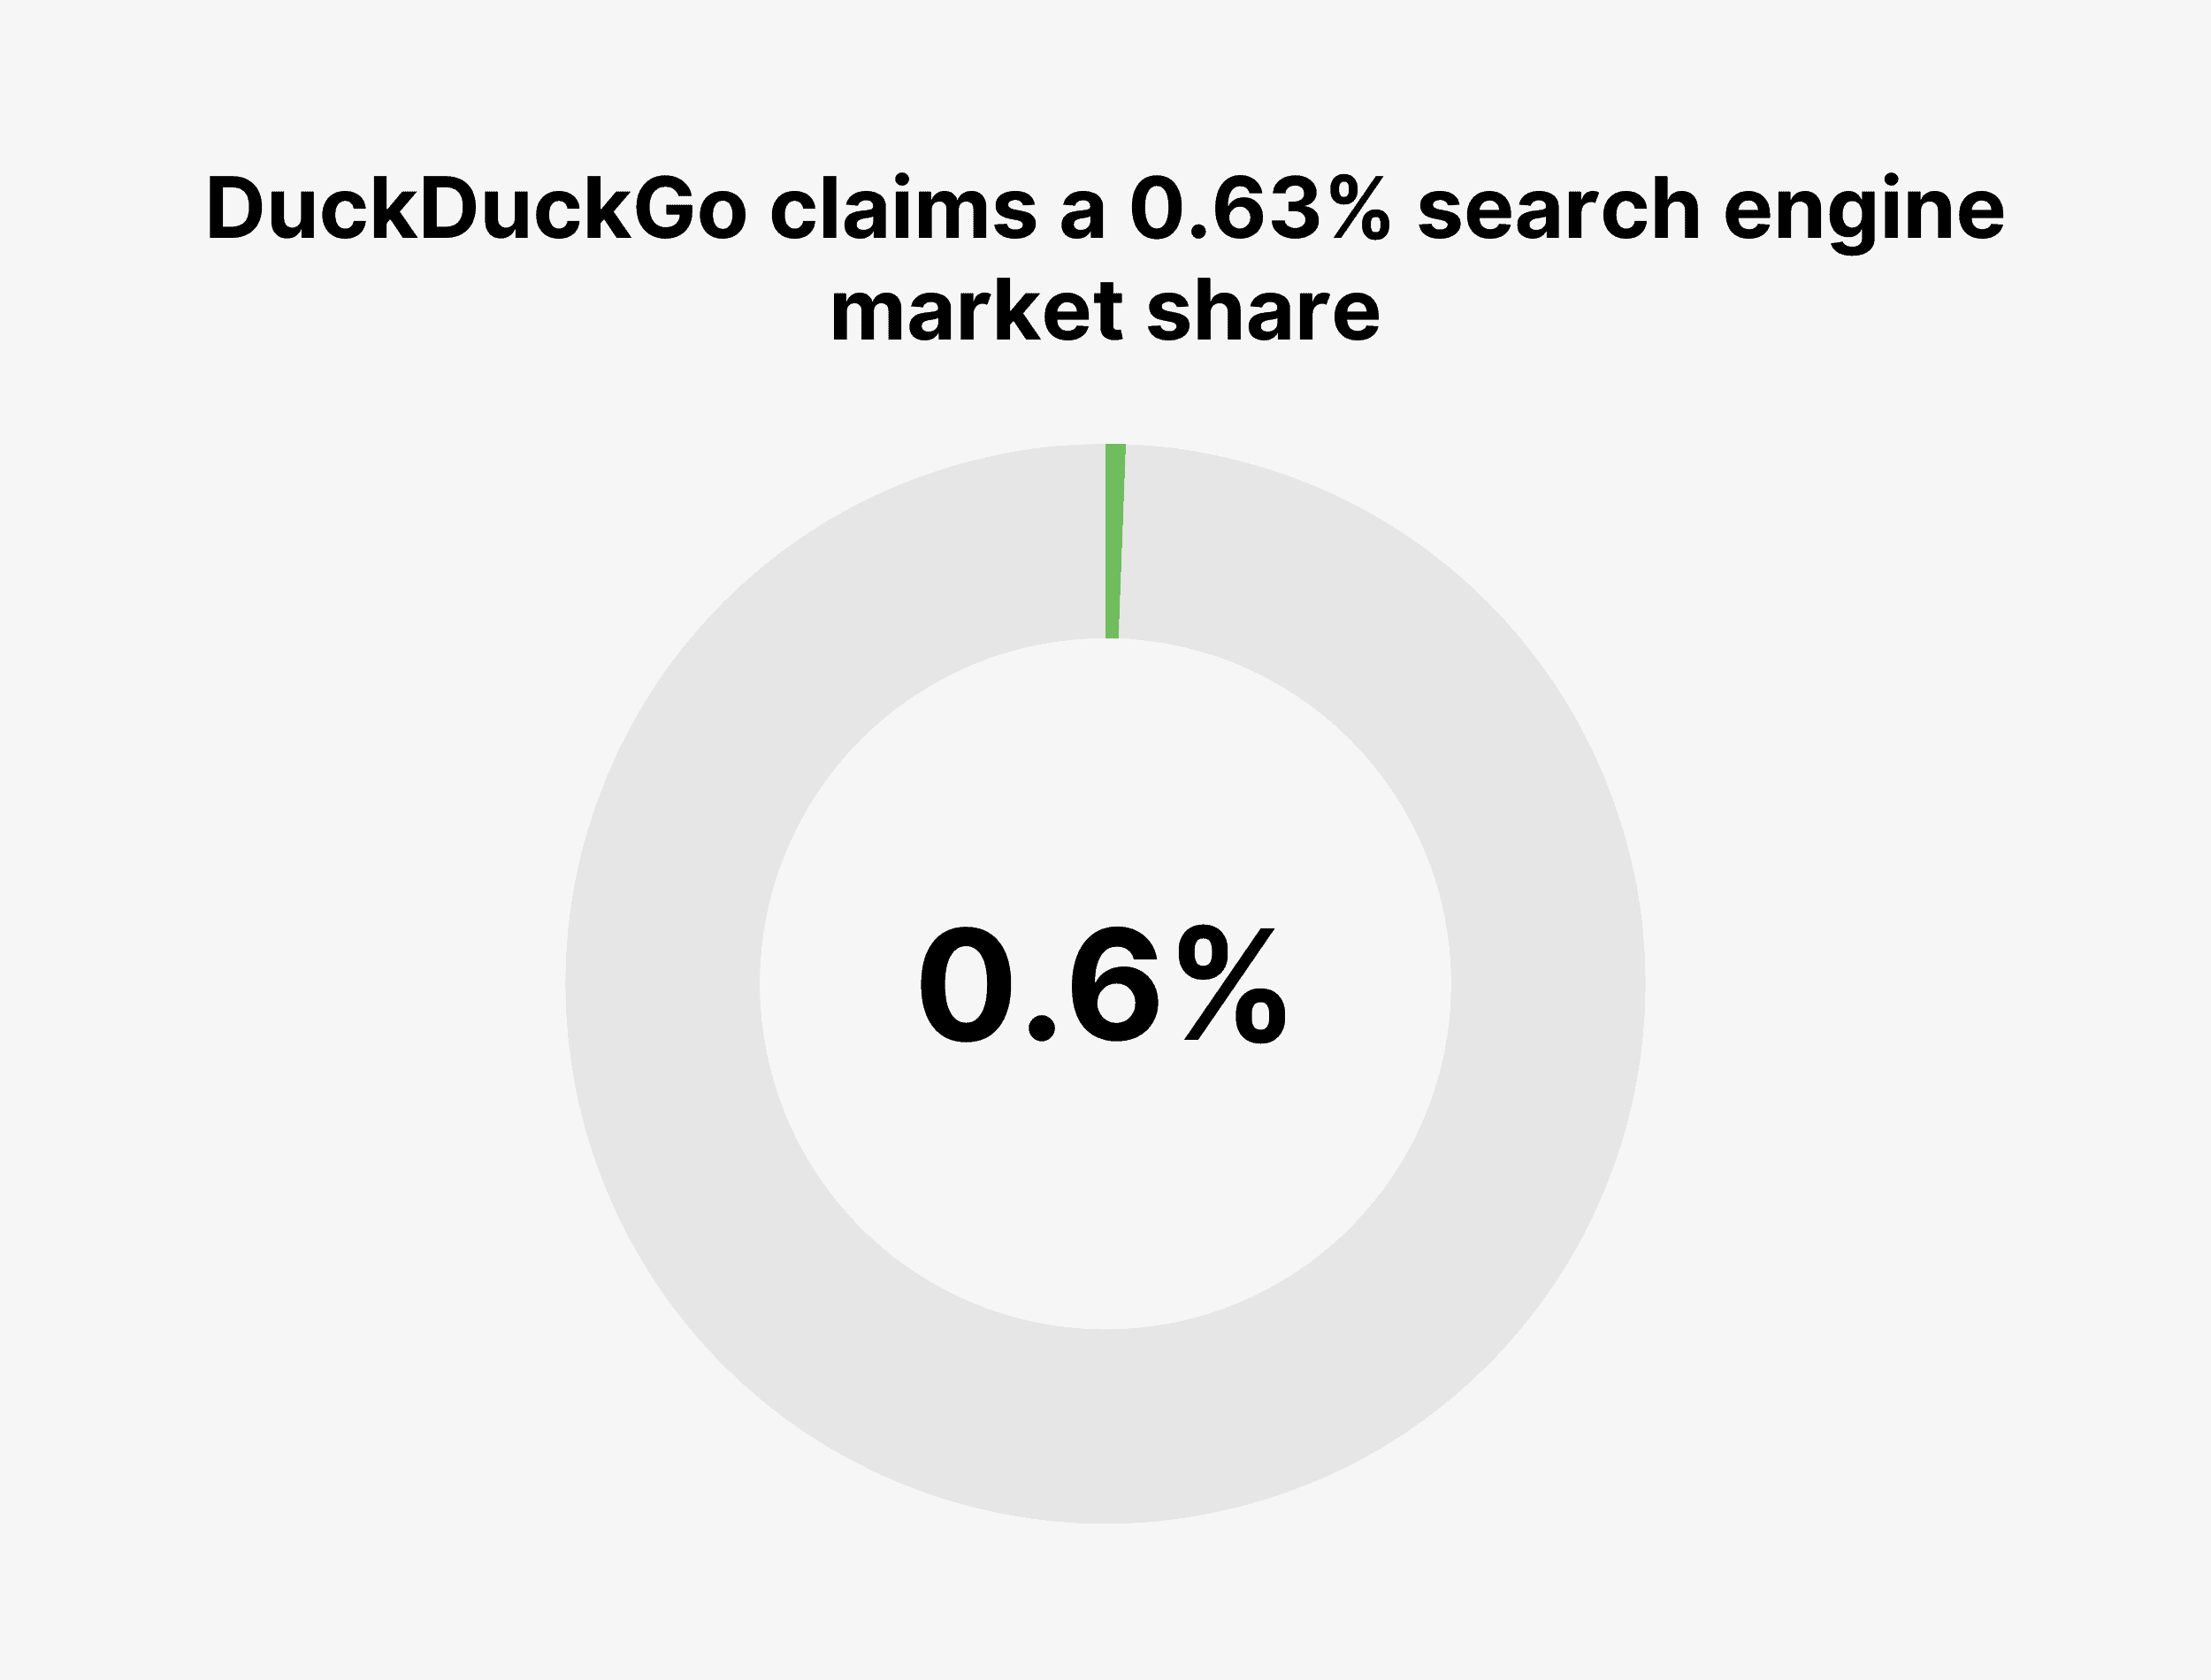 DuckDuckGo claims a 0.63% search engine market share